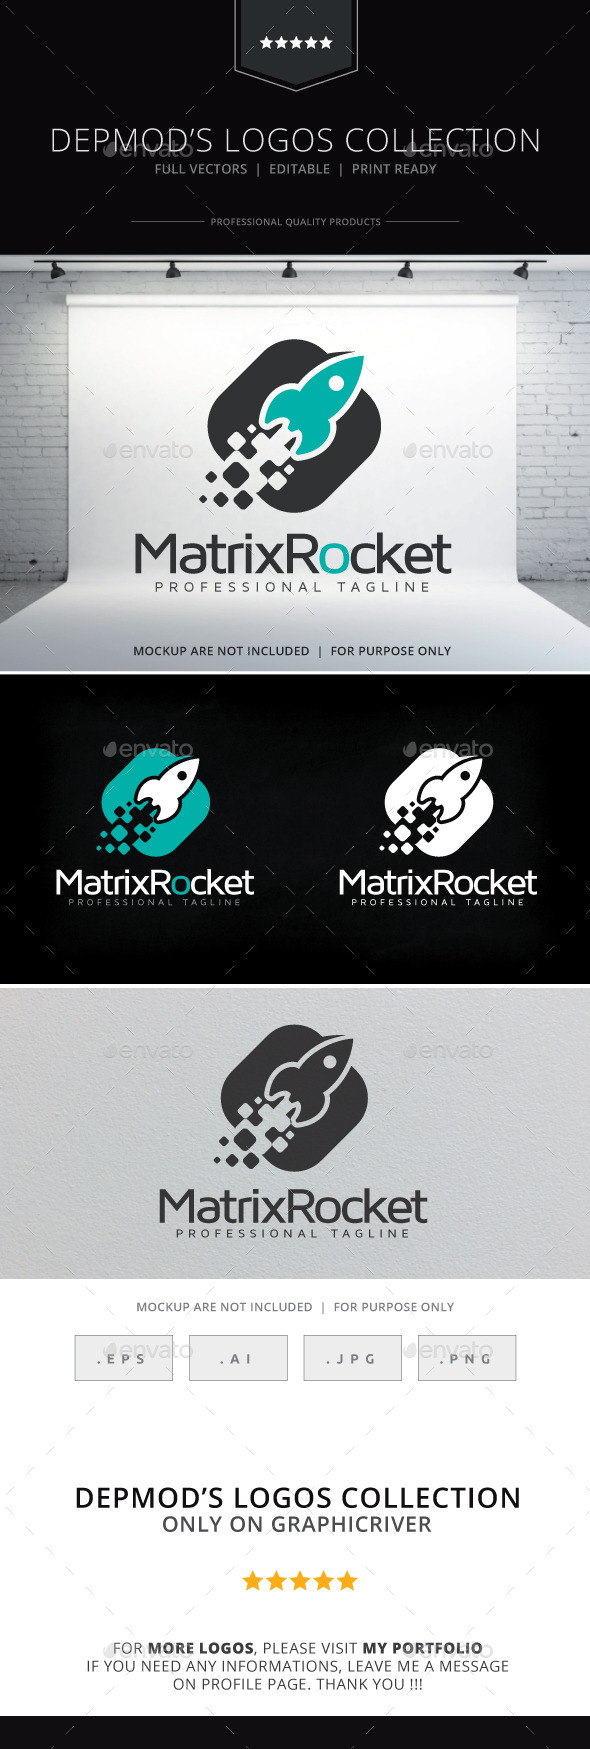 Matrix Rocket Logo